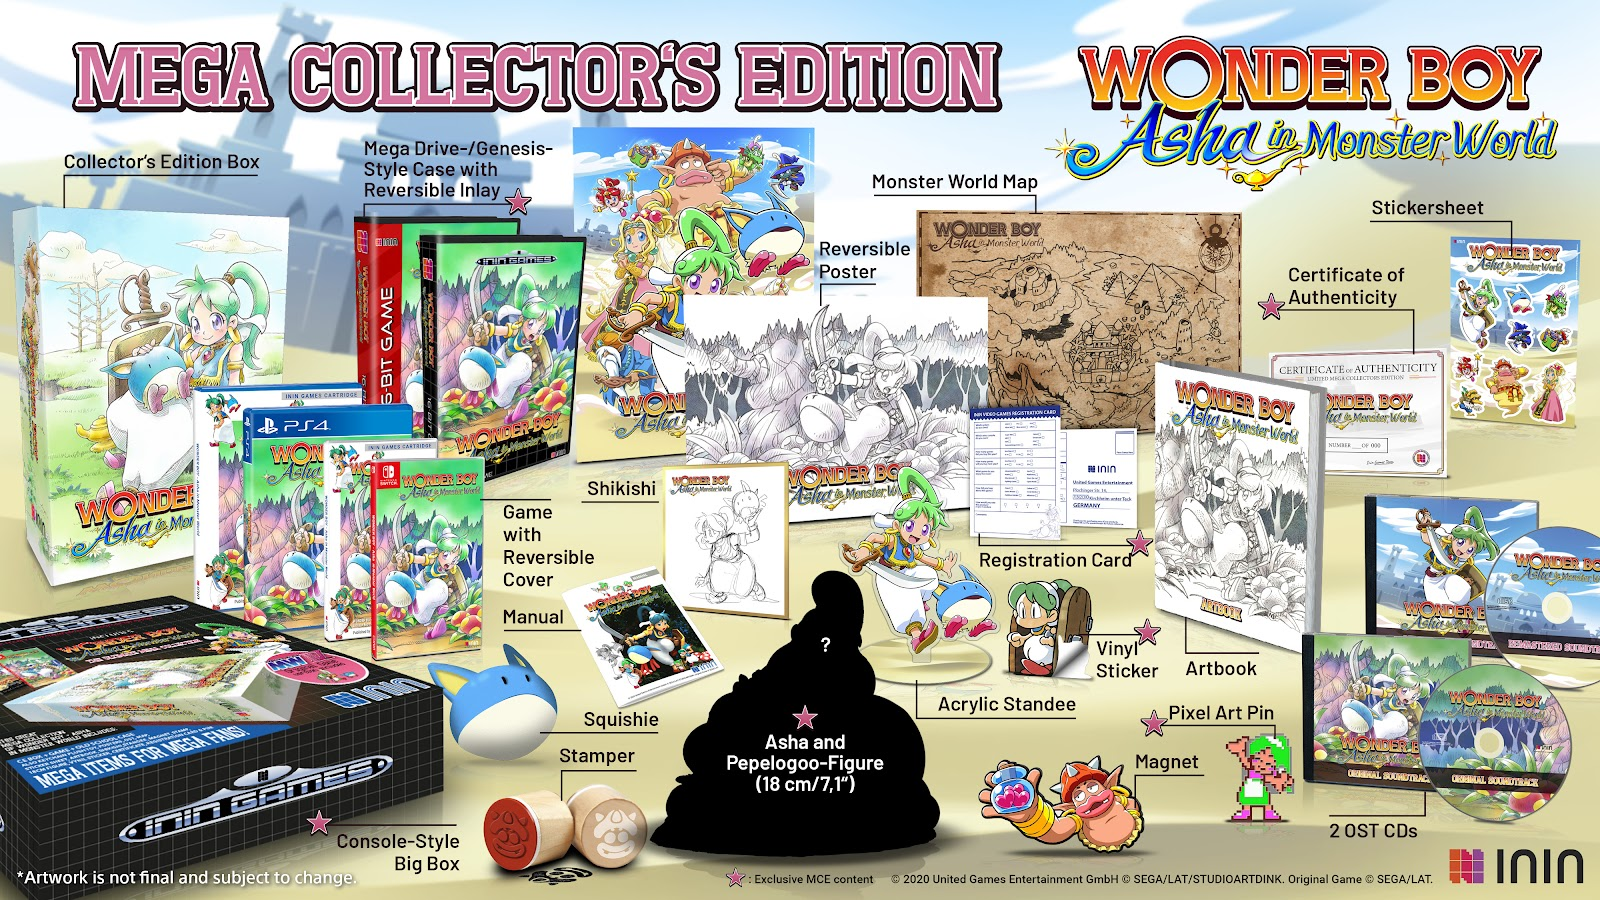 Mega Collector's Edition